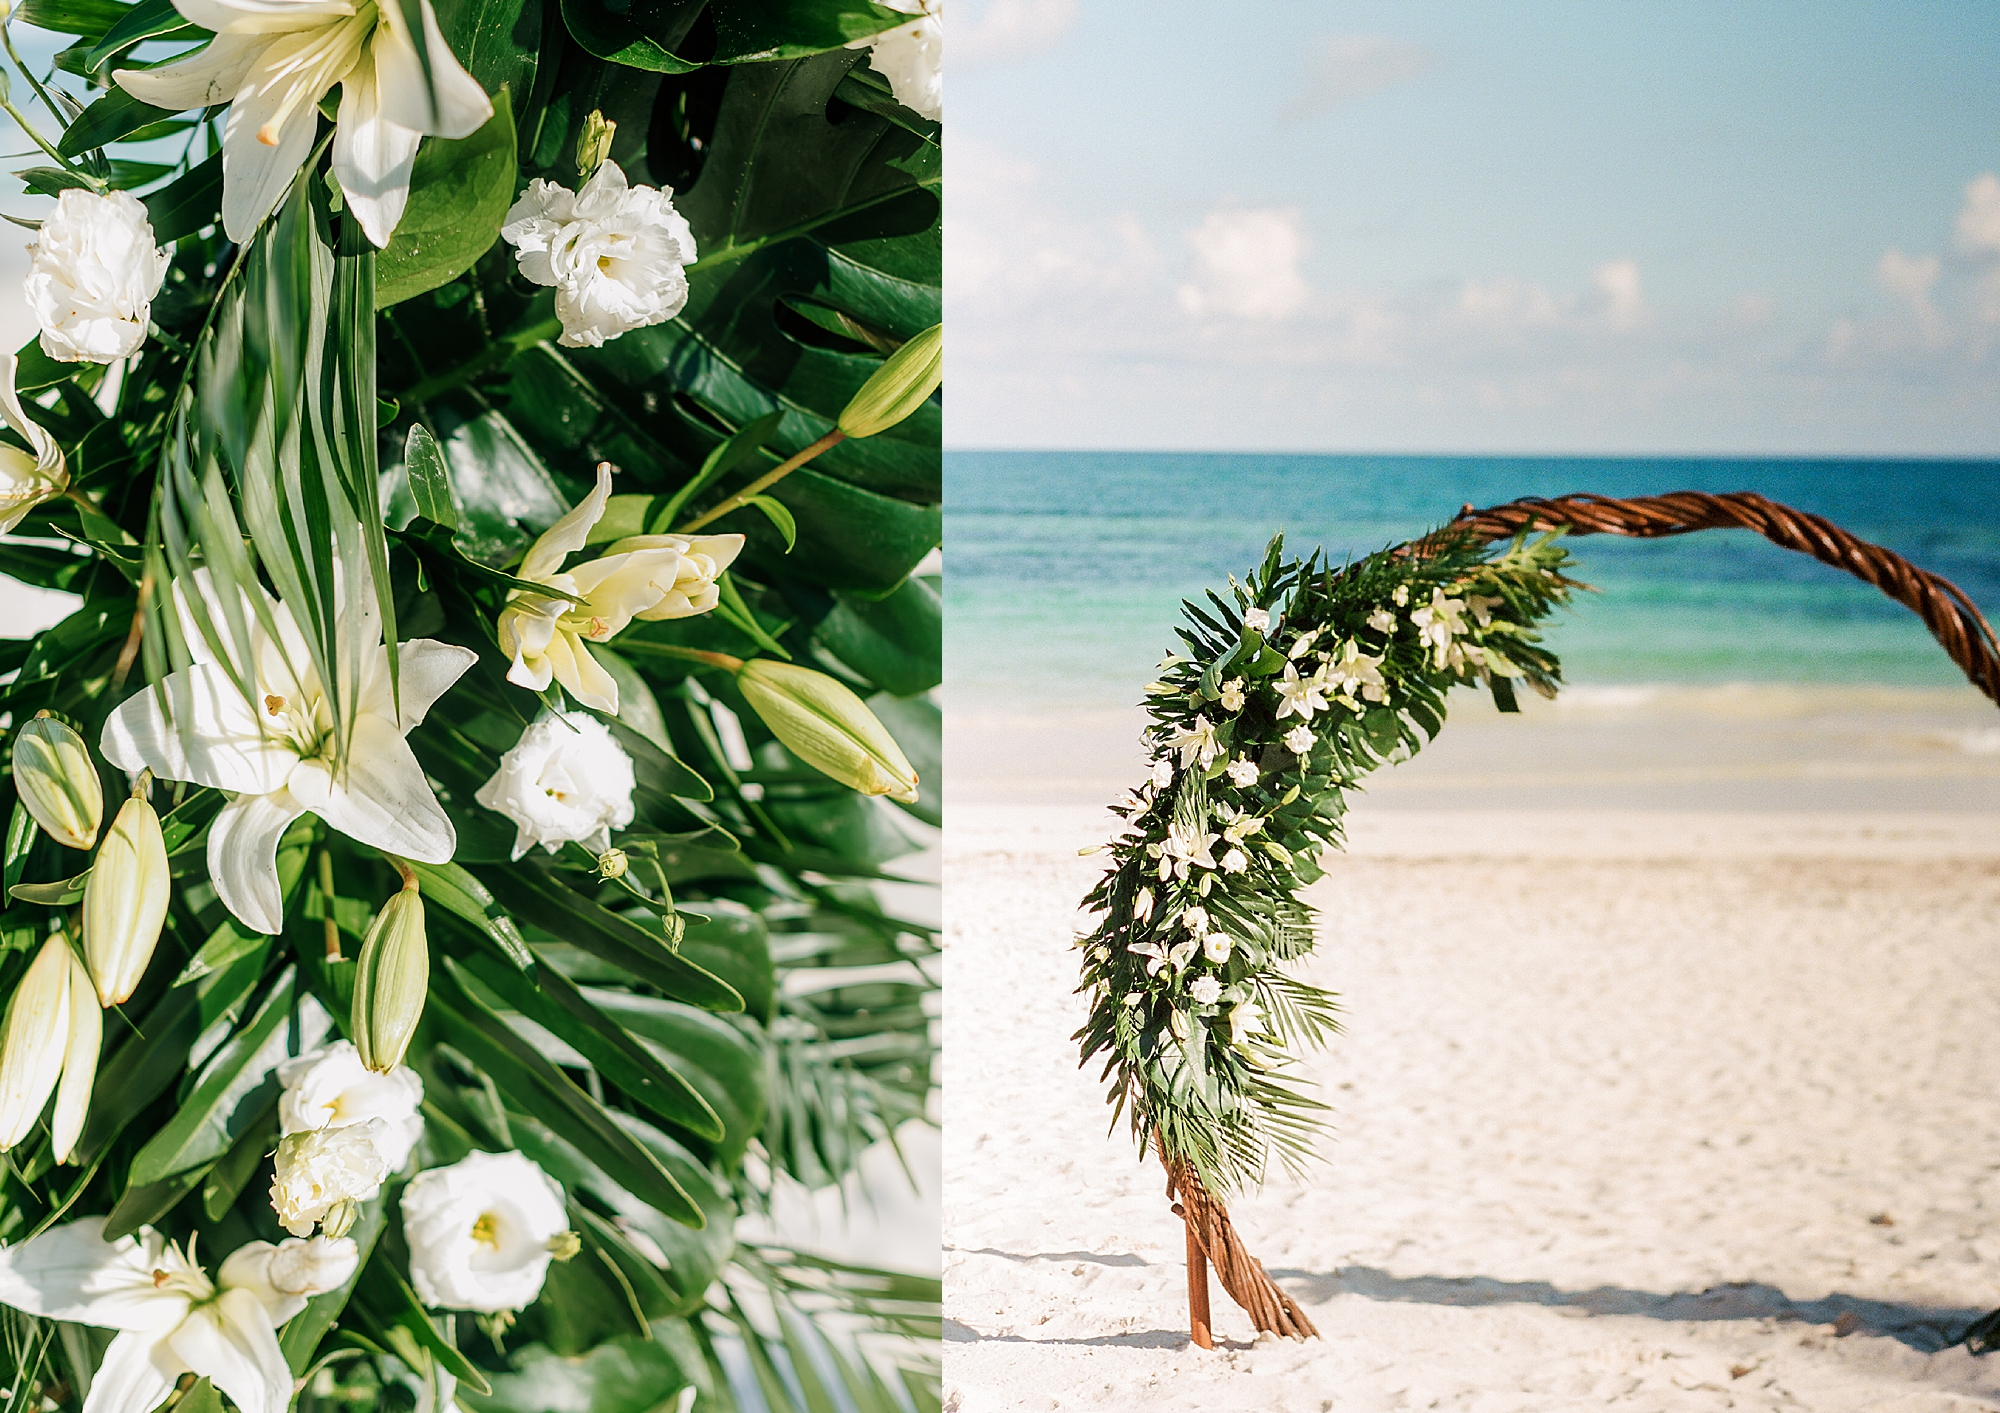 Stylish and Candid Destination Film Wedding Photography in Tulum Mexico by Magdalena Studios 0010